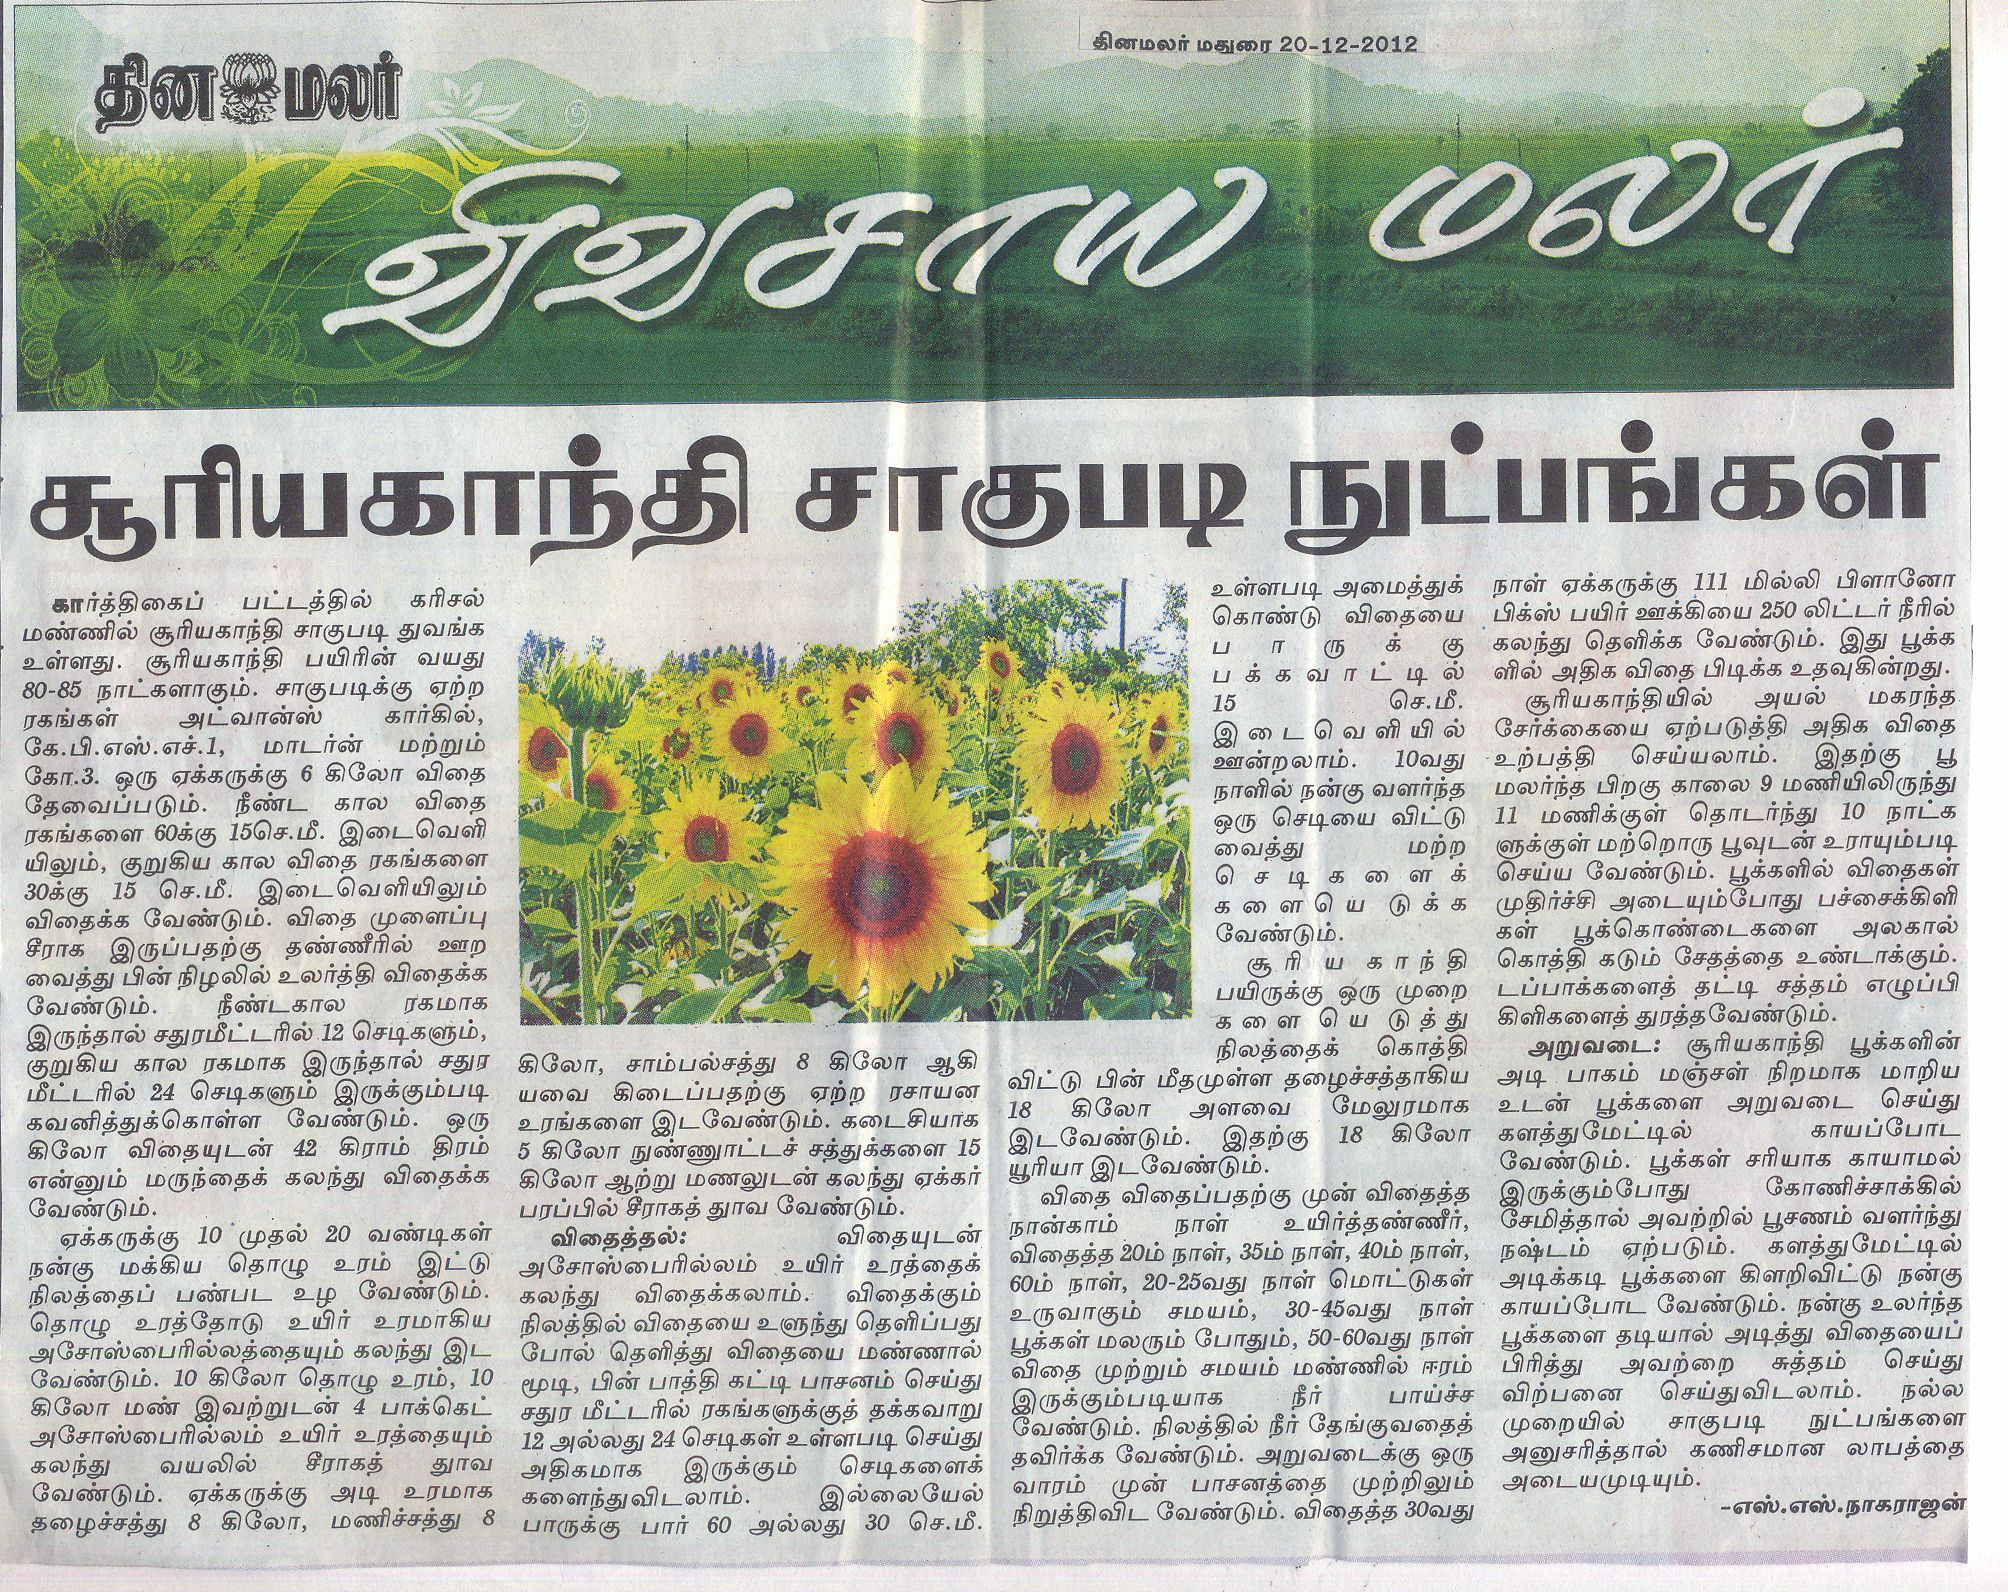 J Farm article on Dinamalar, a Tamil paper  tafe.com | tafecafe.org